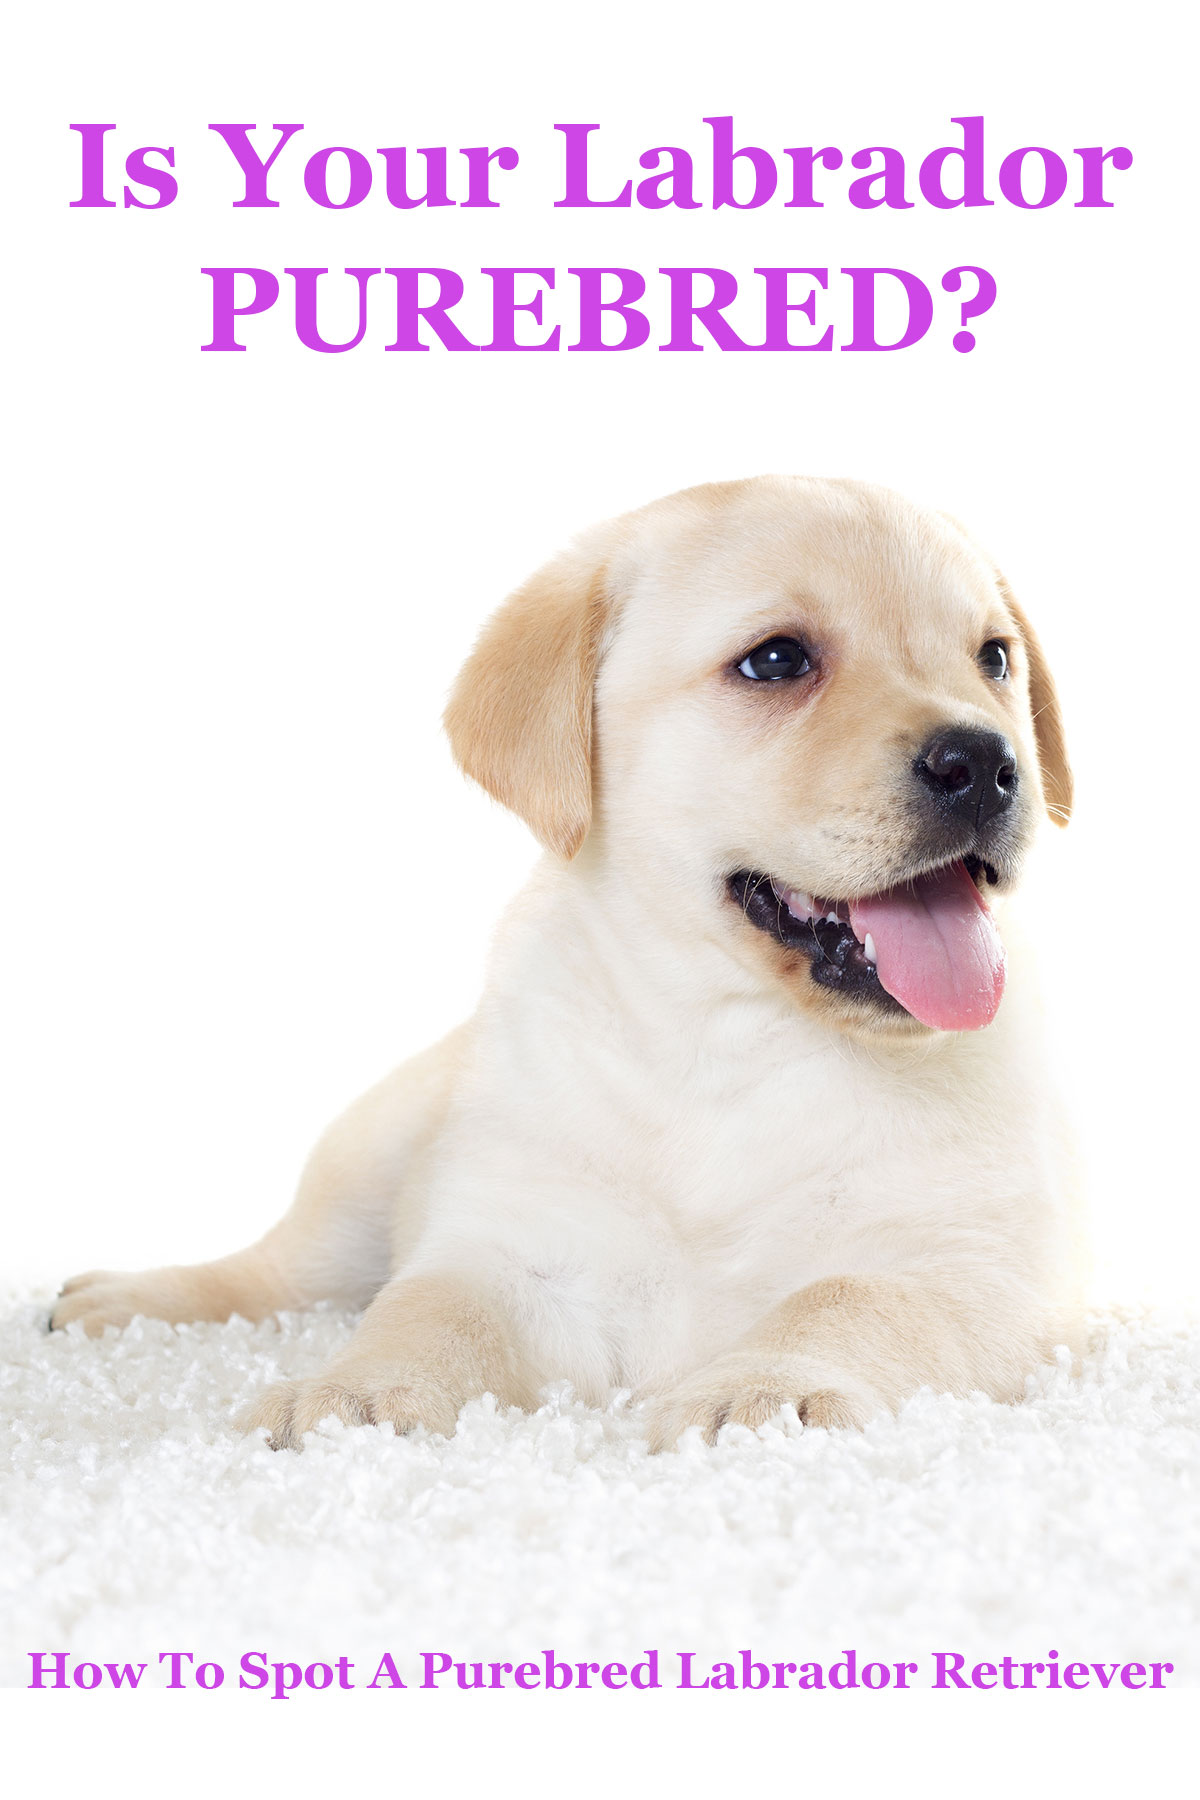 Is My Dog Purebred? - The Labrador Site